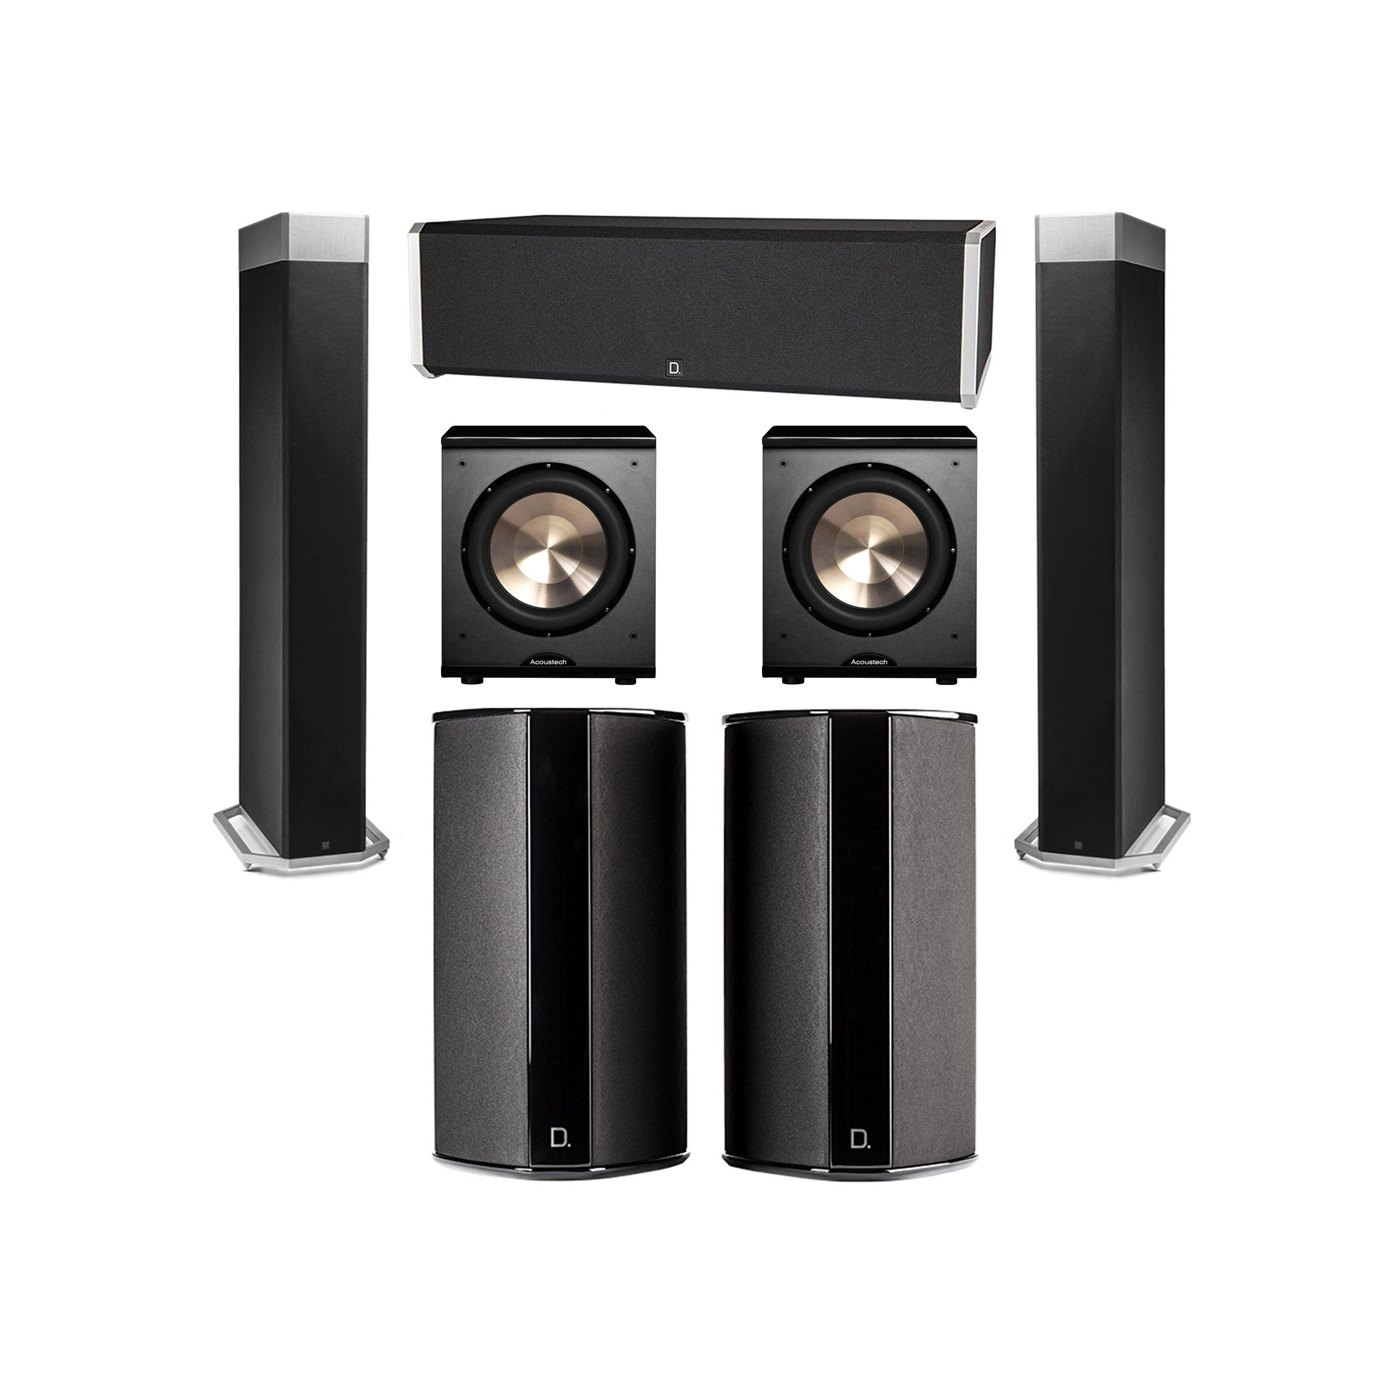 Definitive Technology 5.2 System with 2 BP9080X Tower Speakers, 1 CS9040 Center Channel Speaker, 2 SR9080 Surround Speaker, 2 BIC PL-200 Subwoofer